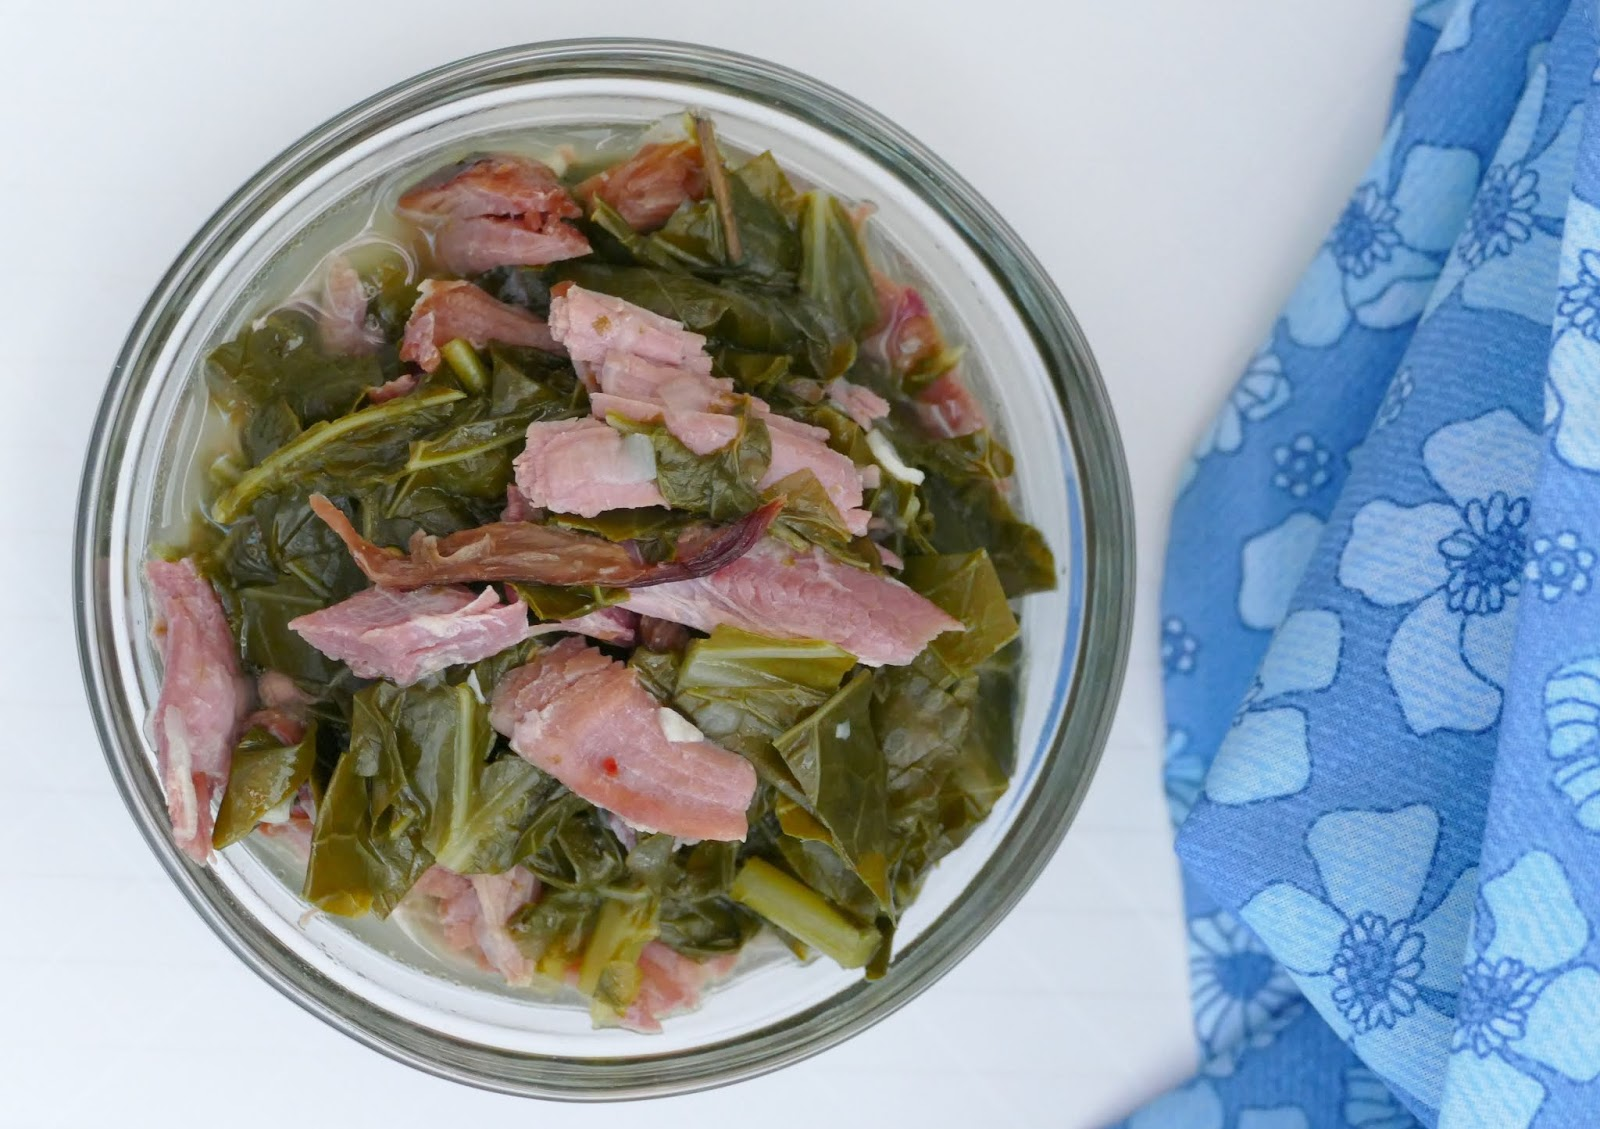 This side dish is the perfect addition to your Sunday soul food dinner! Serve with fried fish or chicken, mac and cheese, cornbread and sweet potato pie for a tasty comfort food meal! The smoked turkey leg adds the most amazing flavor to these greens!